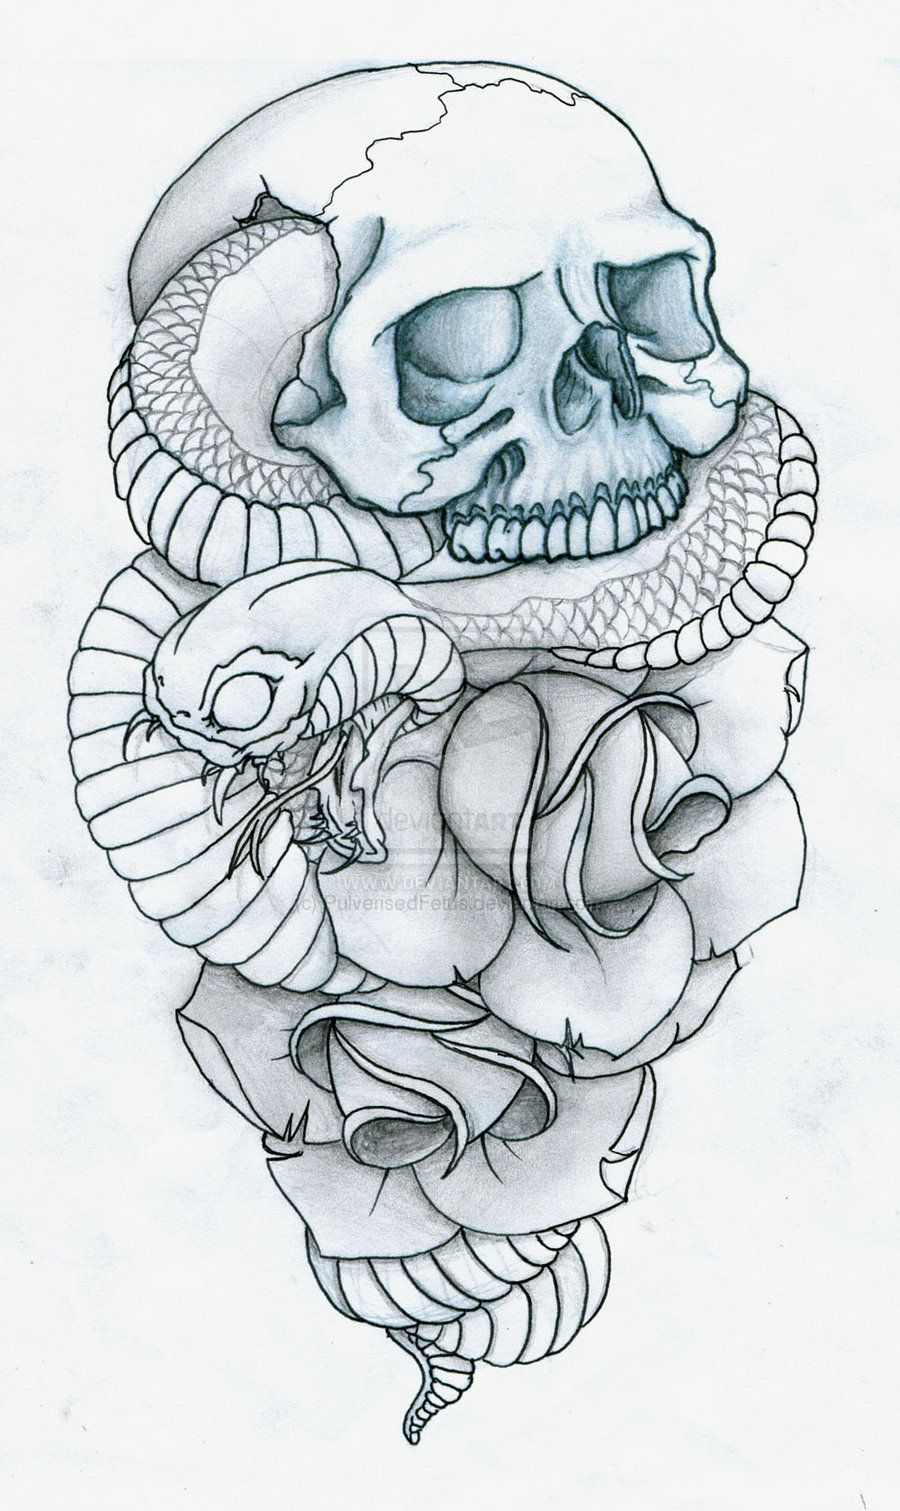 Photo of Skull, Snake and Roses Tattoo by PulverisedFetus on DeviantArt